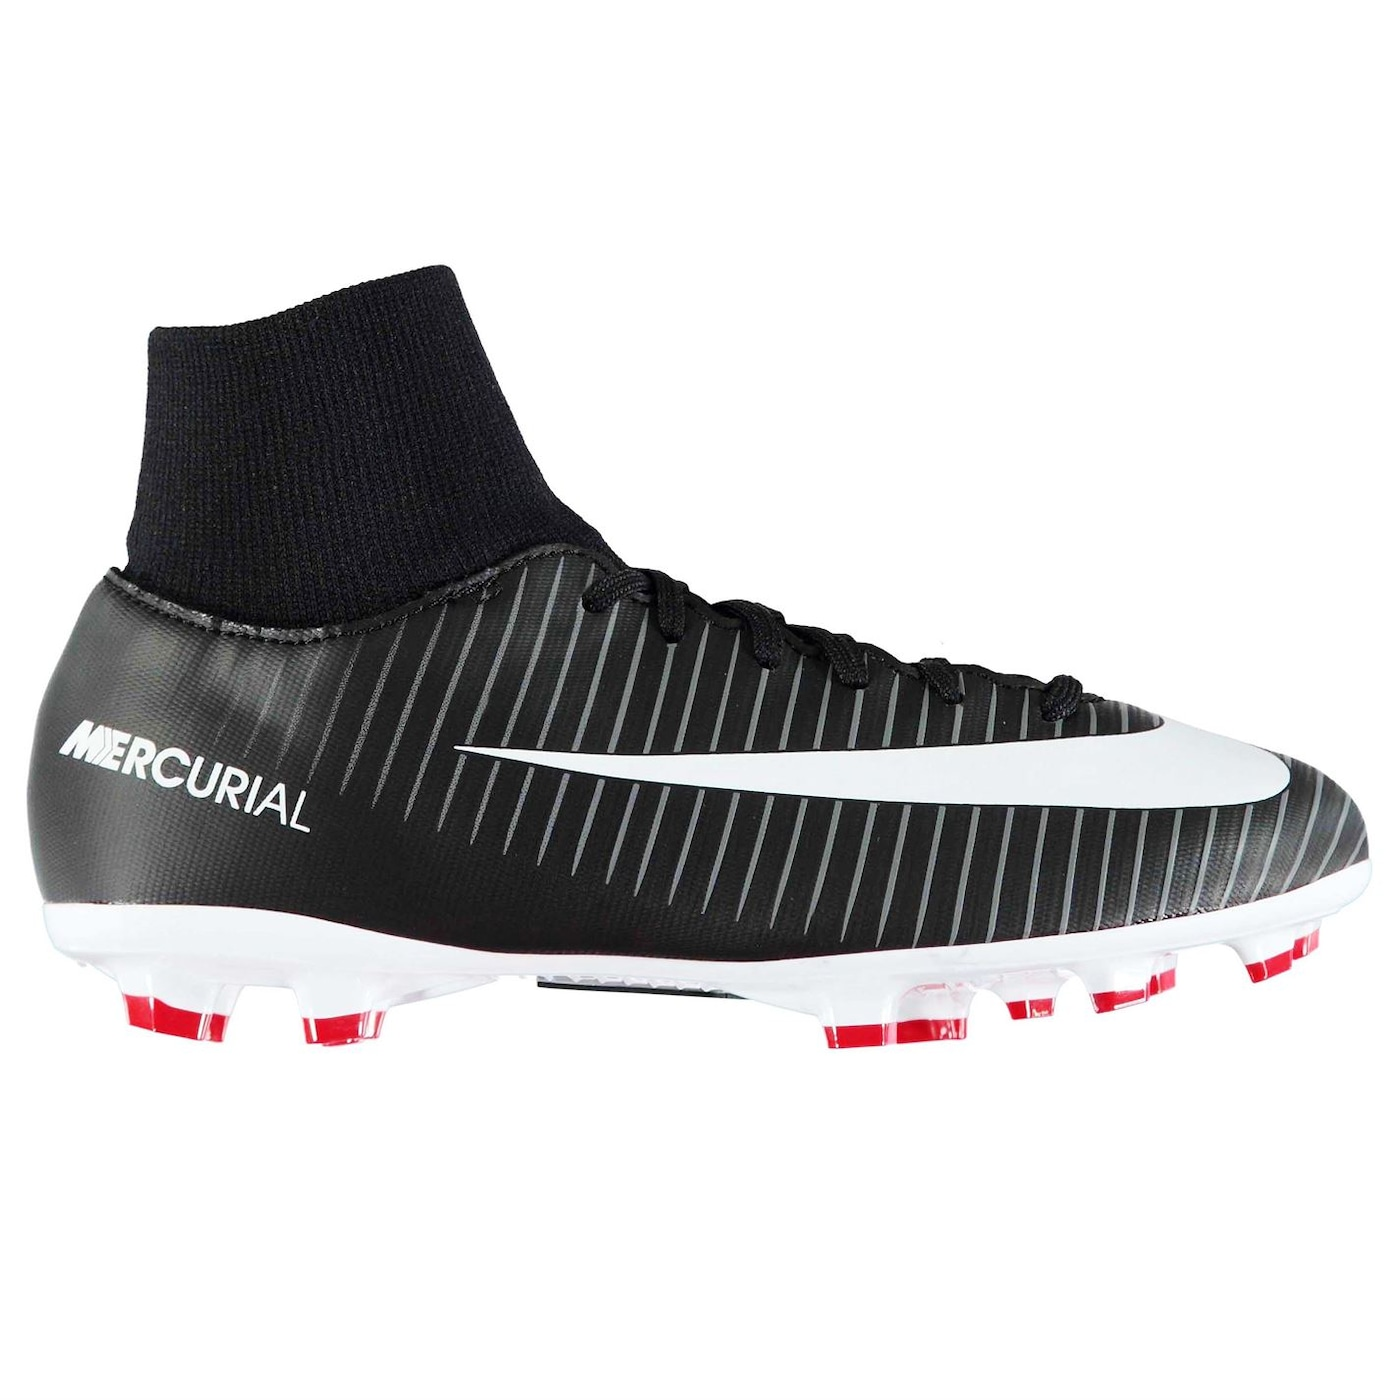 Nike Mercurial Victory Dynamic Fit FG Football Boots Junior Boys